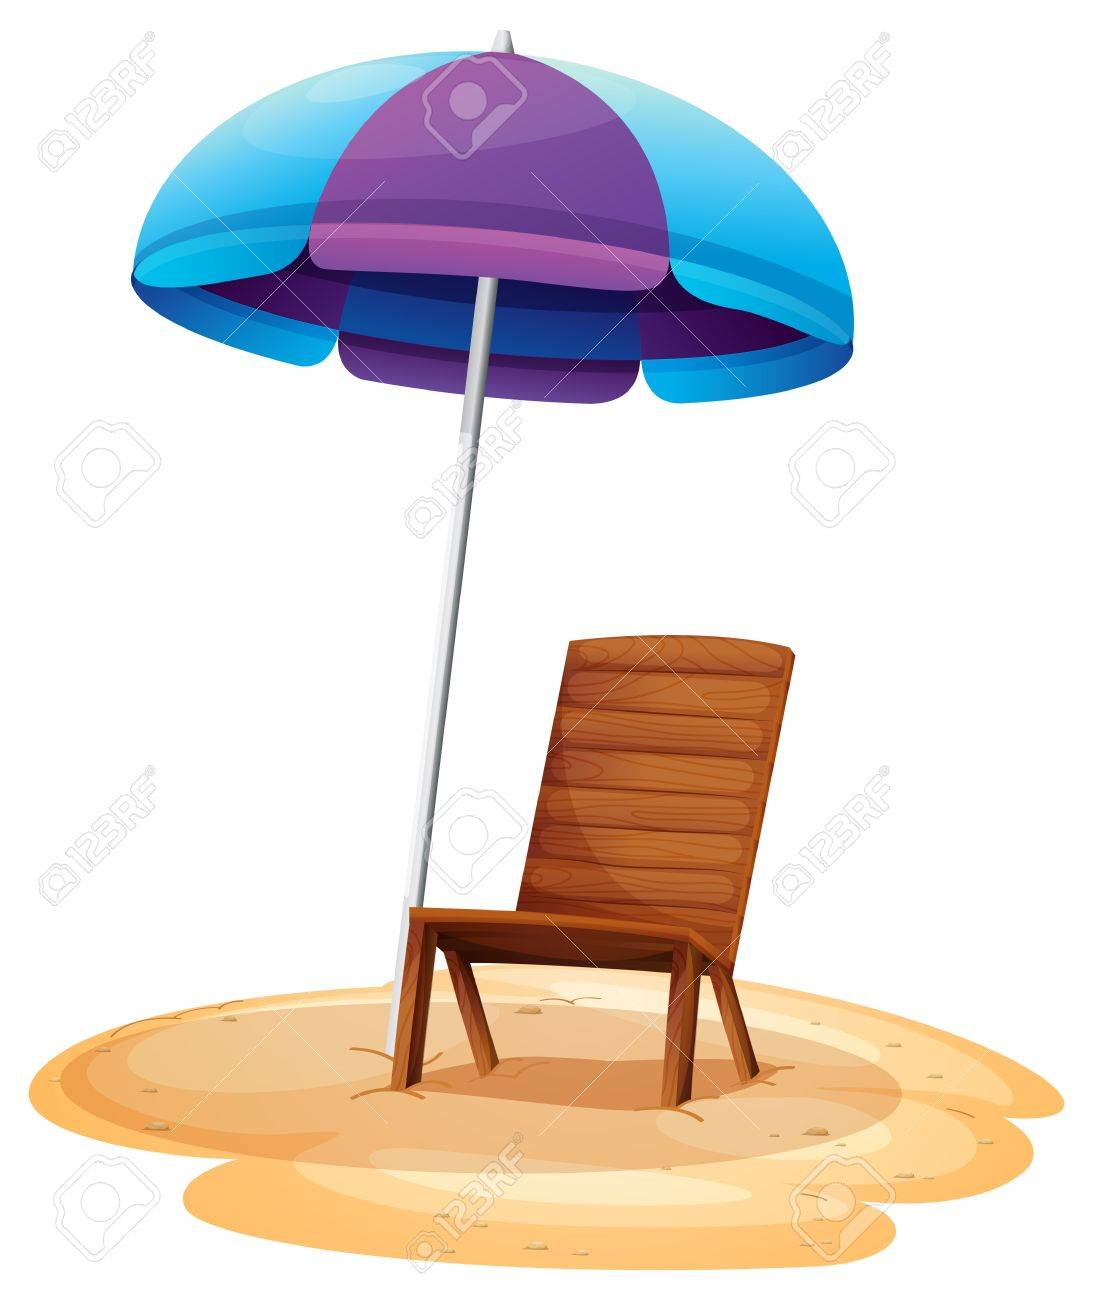 Chair beach umbrella and chair black and white - Illustration Of A Stripe Beach Umbrella And A Wooden Chair On A White Background Stock Vector